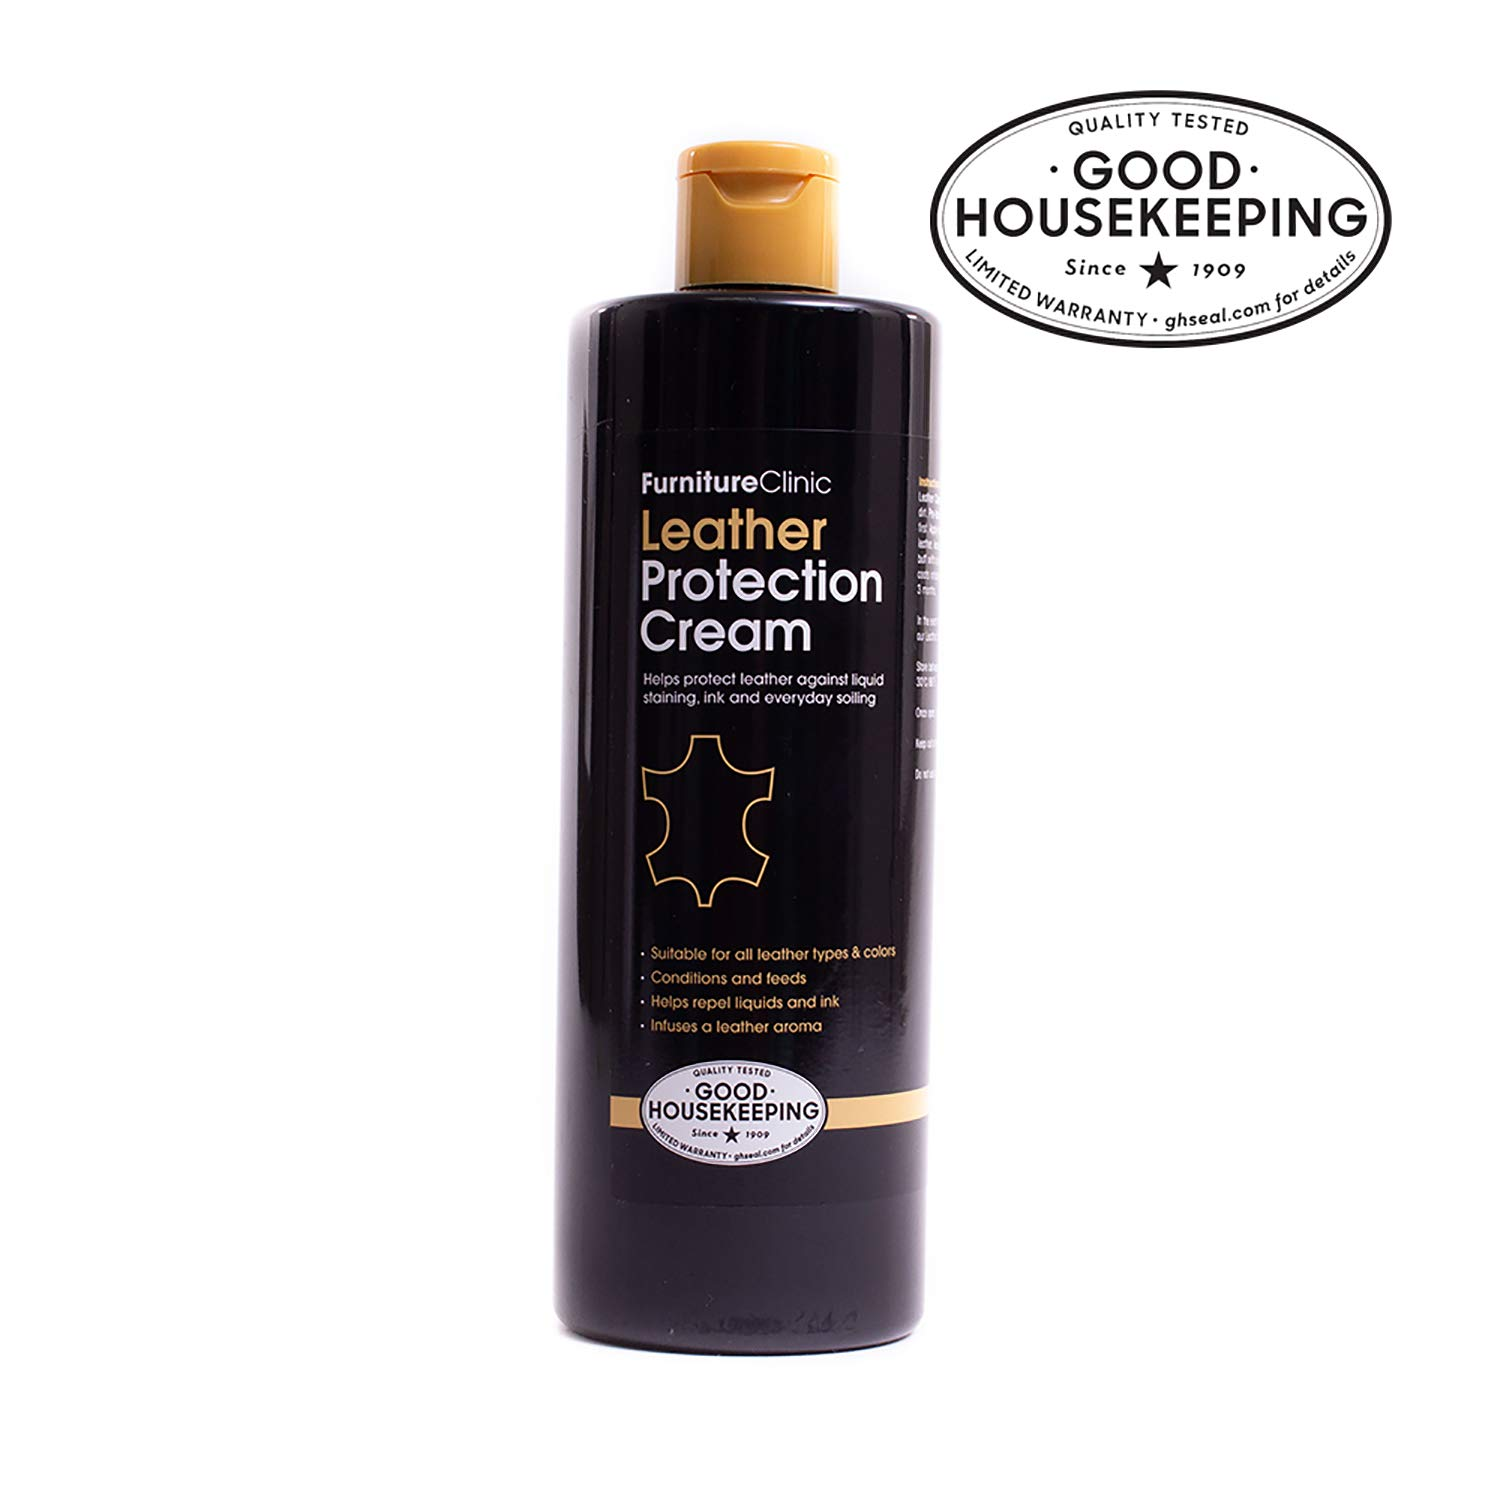 Furniture Clinic Leather Conditioner and Protection Cream (500ml) - For Car Interiors / Seats, Leather Furniture, Couches, Shoes, Boots, Bags, Purses | For all Leather Types and Colors (black, brown, tan, etc.)